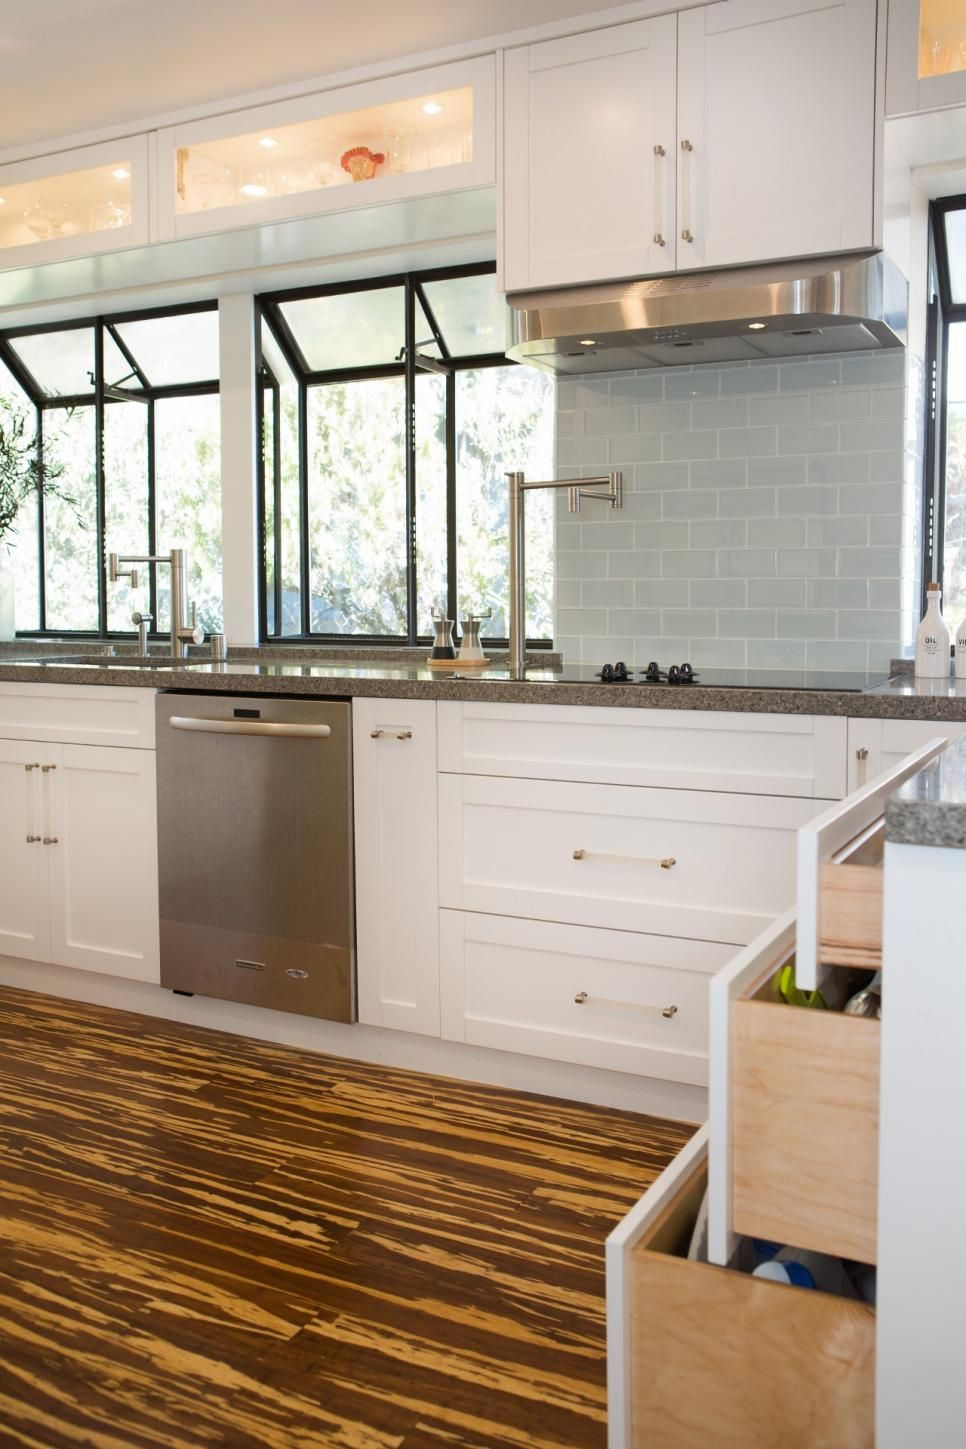 Window under kitchen cabinets  gorgeous angled windows produce a greenhouse feel in this bright and